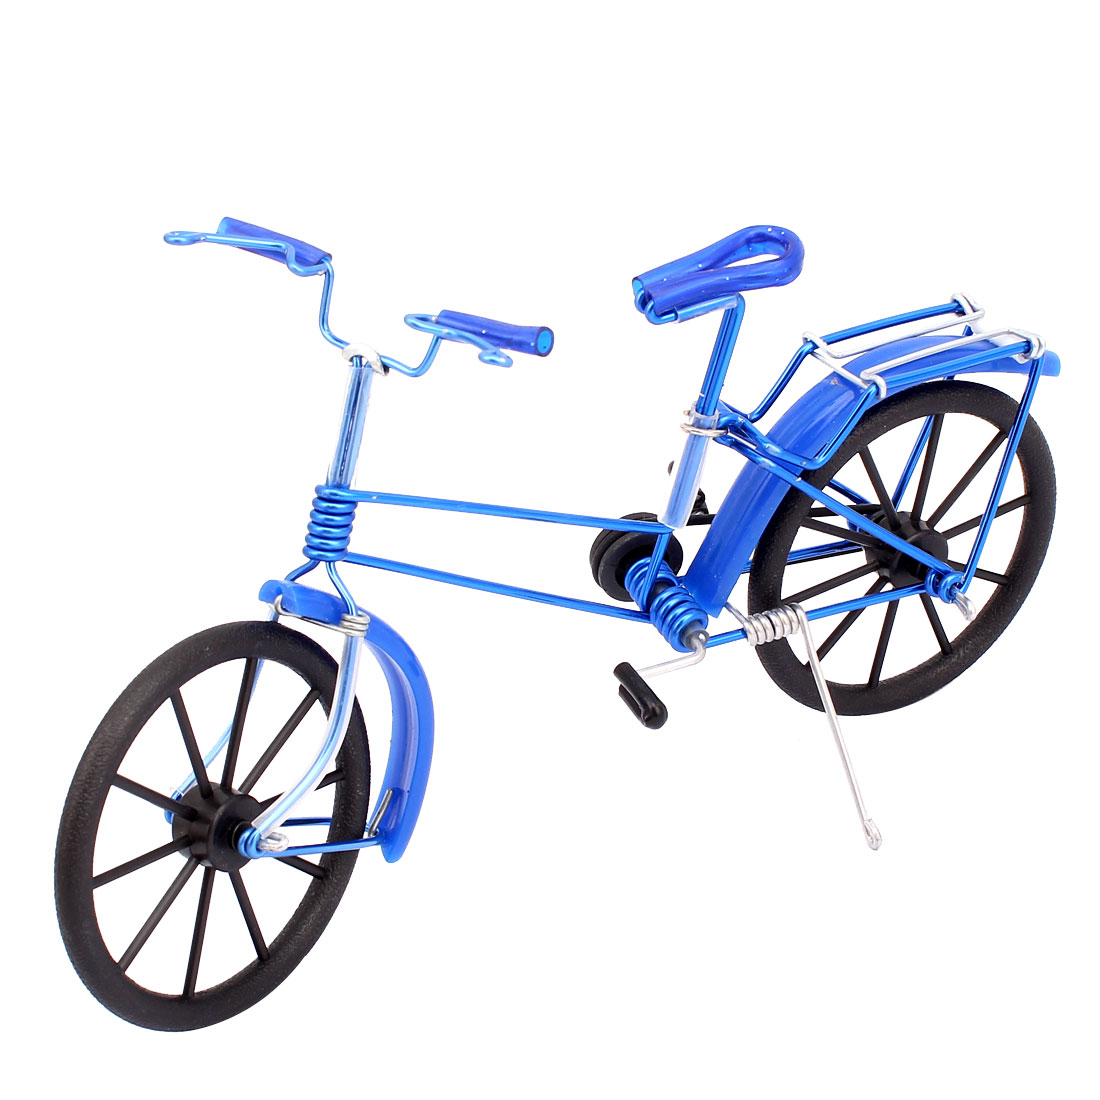 Unique Bargains Handmade Metal Wire Road Bike Bicycle Model Gift Art Decoration Blue